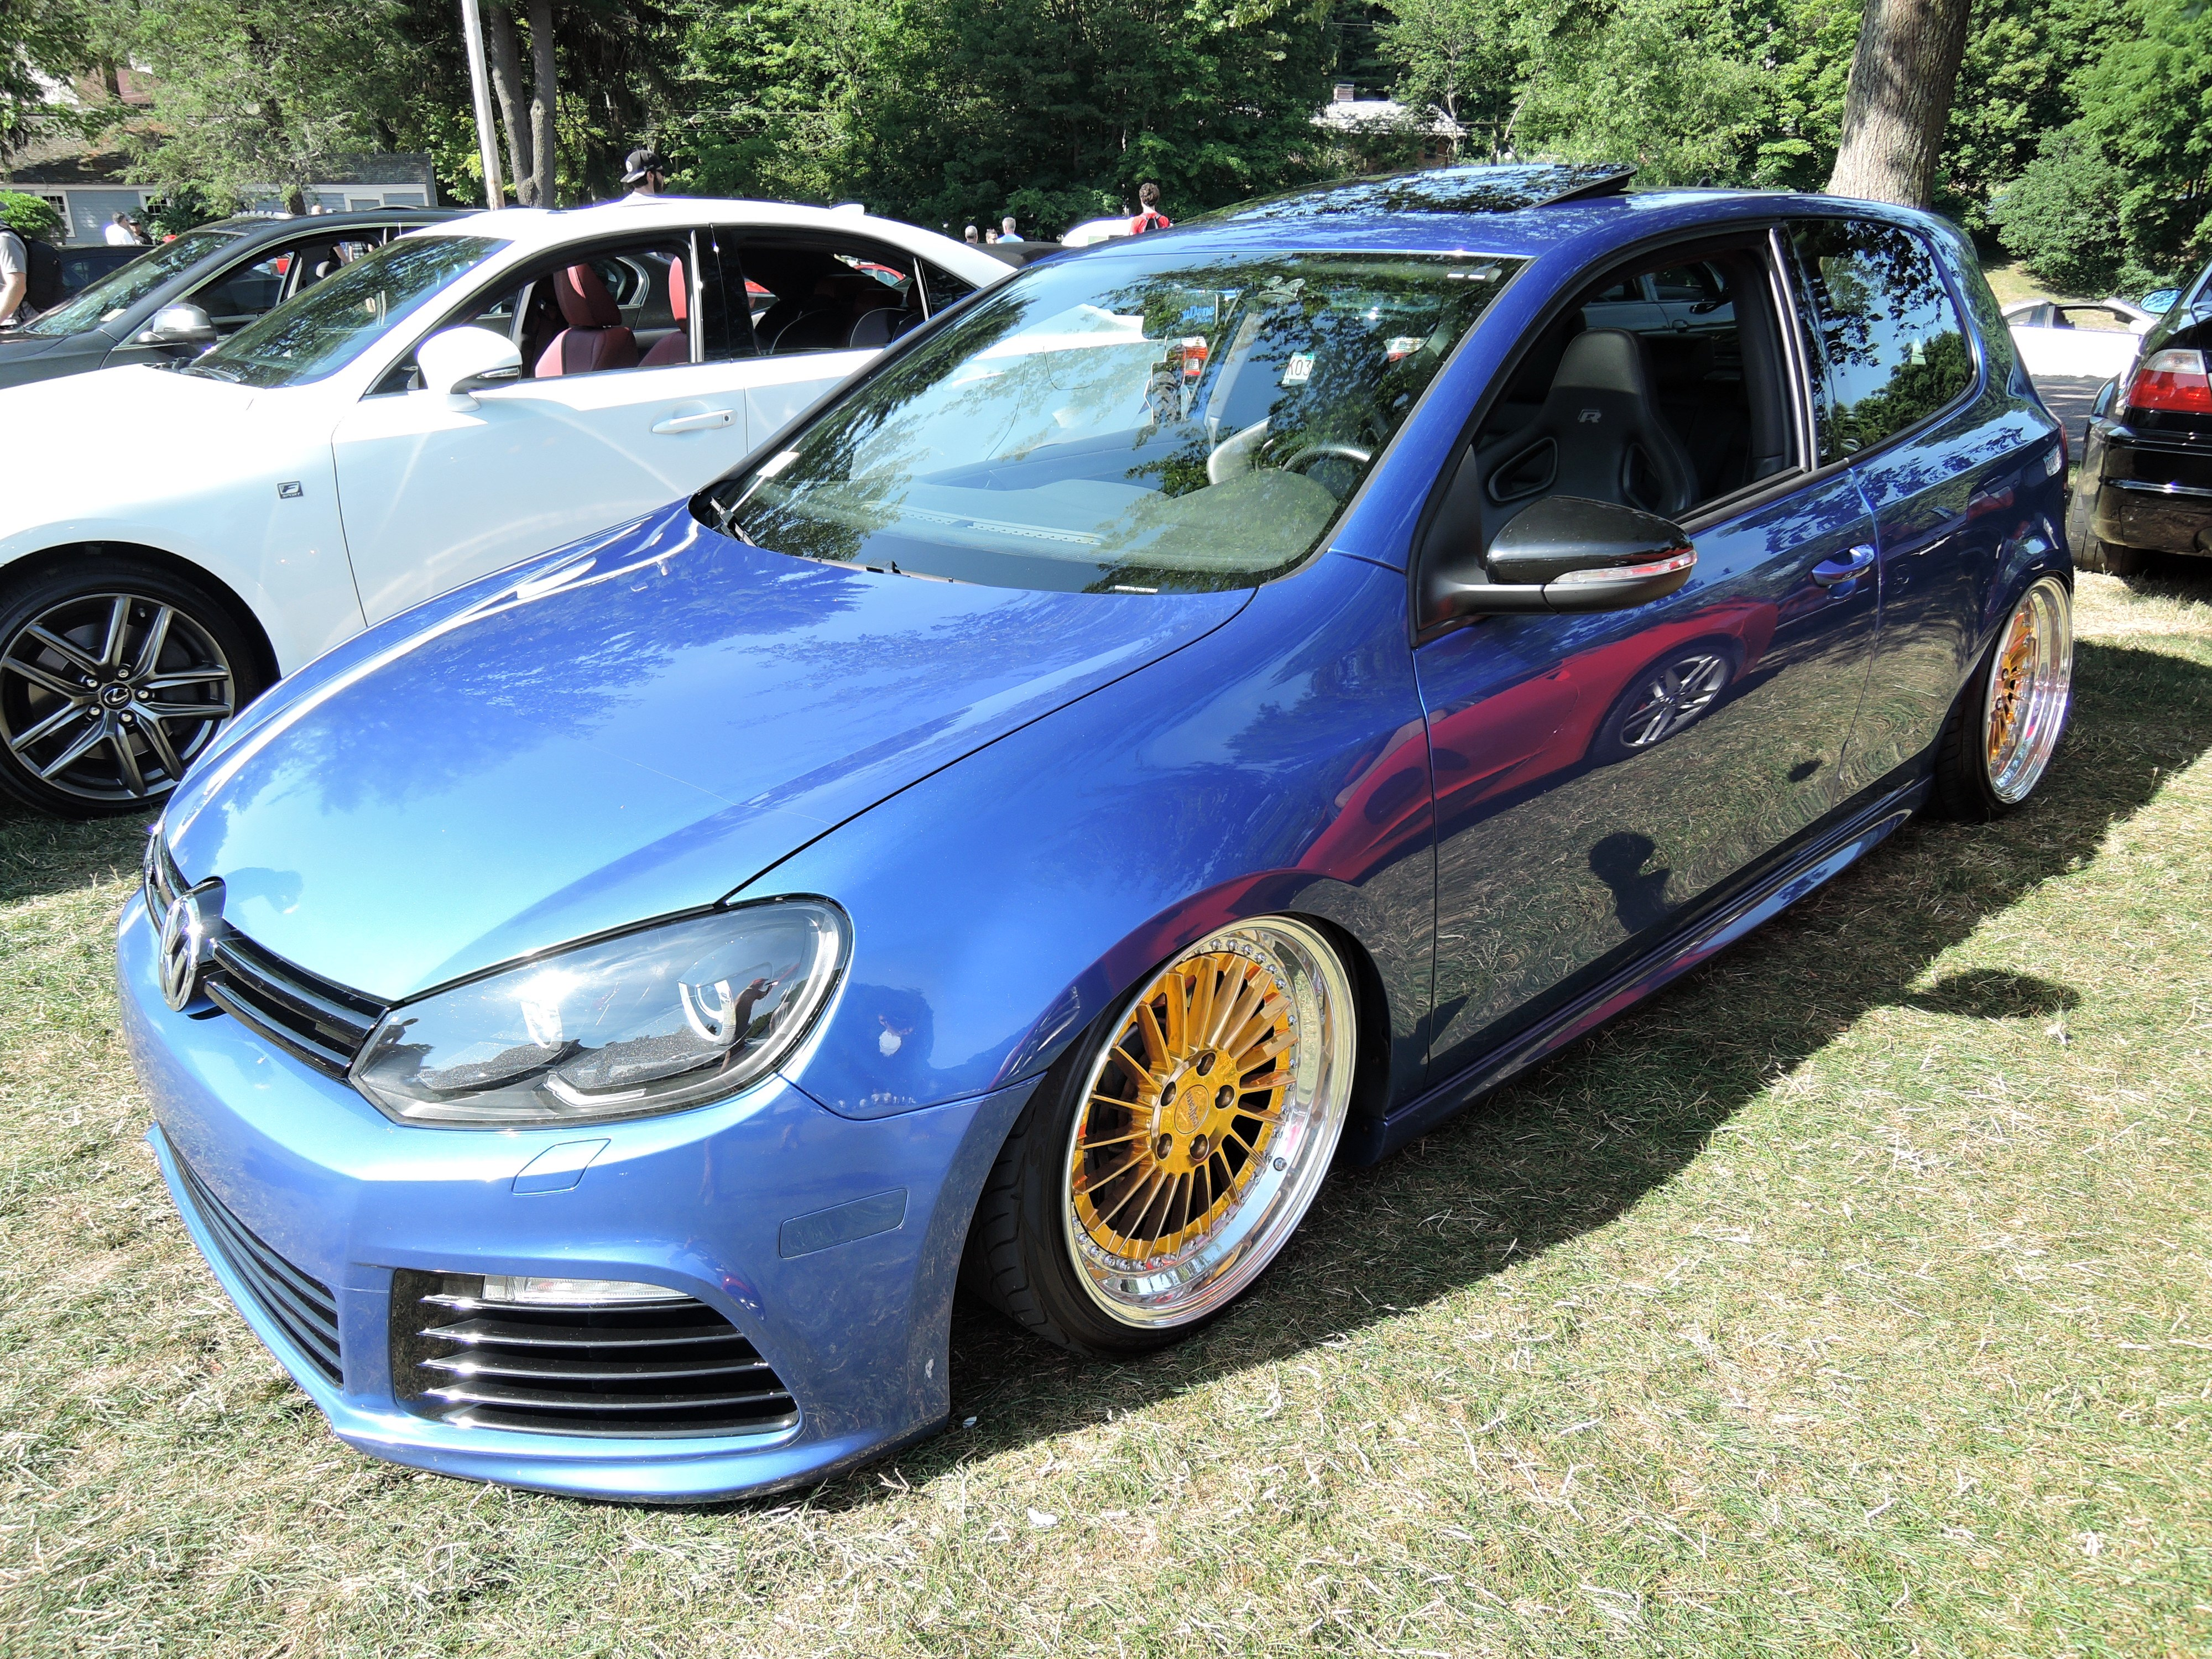 blue vw - trailer - Cars and coffee at larz